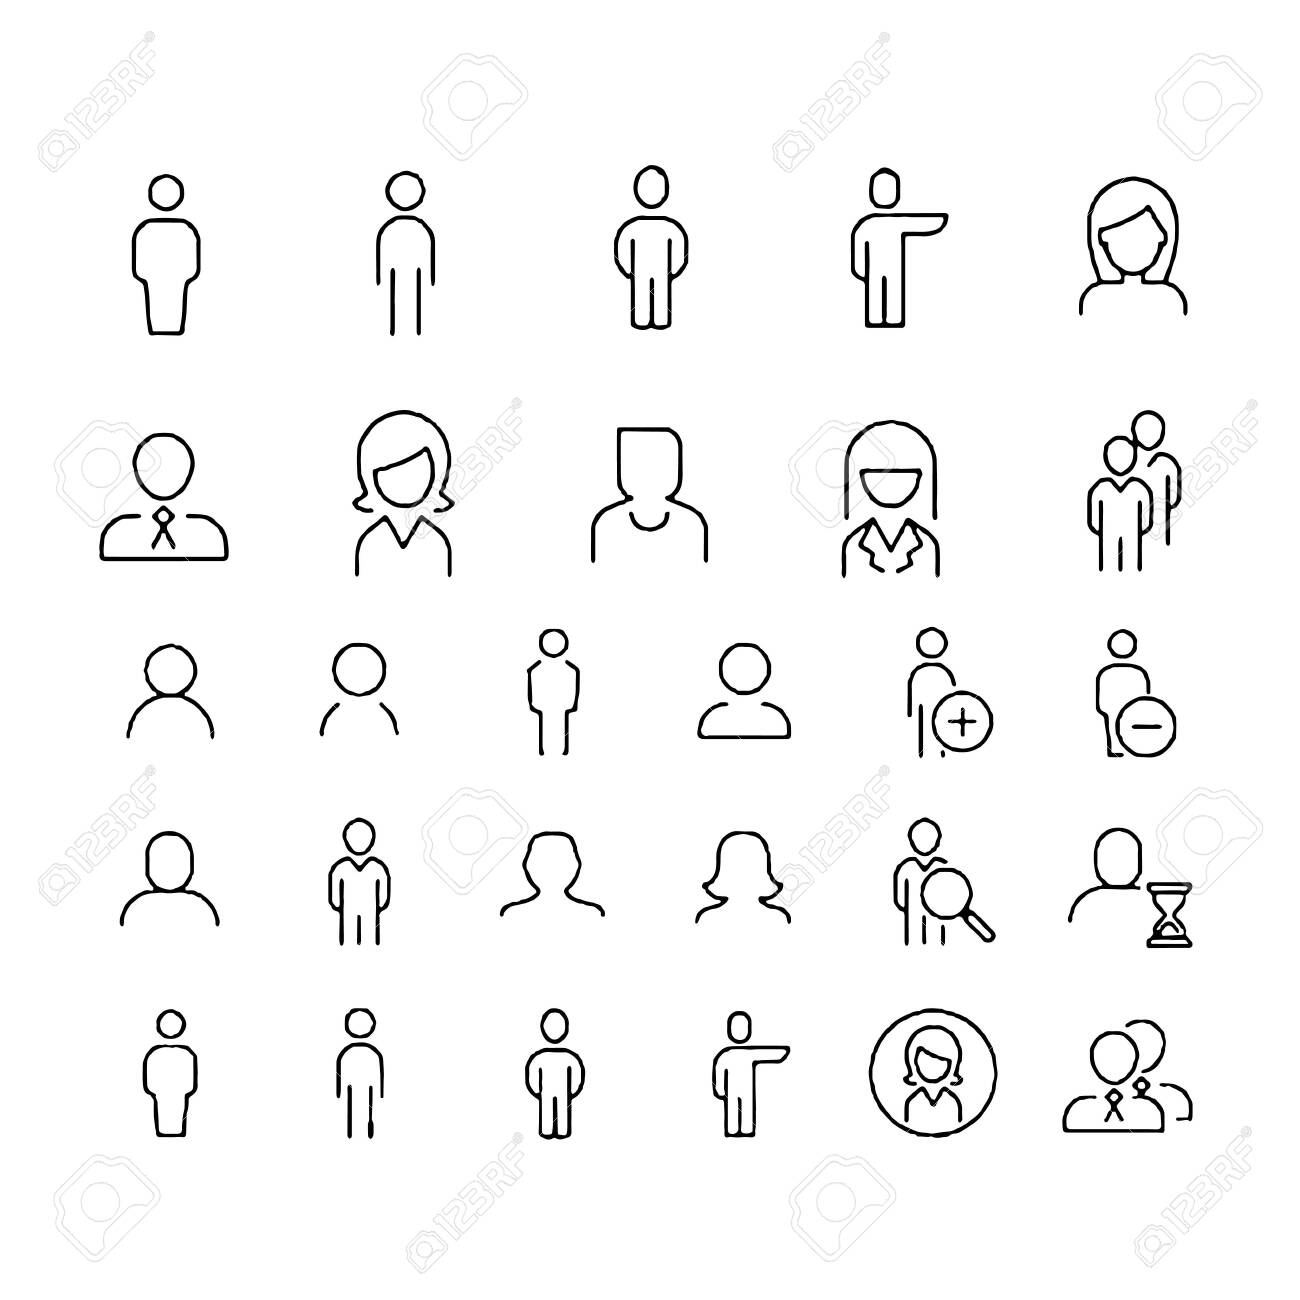 Simple Set of Business People Related Vector Line Icons. Contains such Icons as One-on-One Meeting, Workplace, Business Communication - 152034307